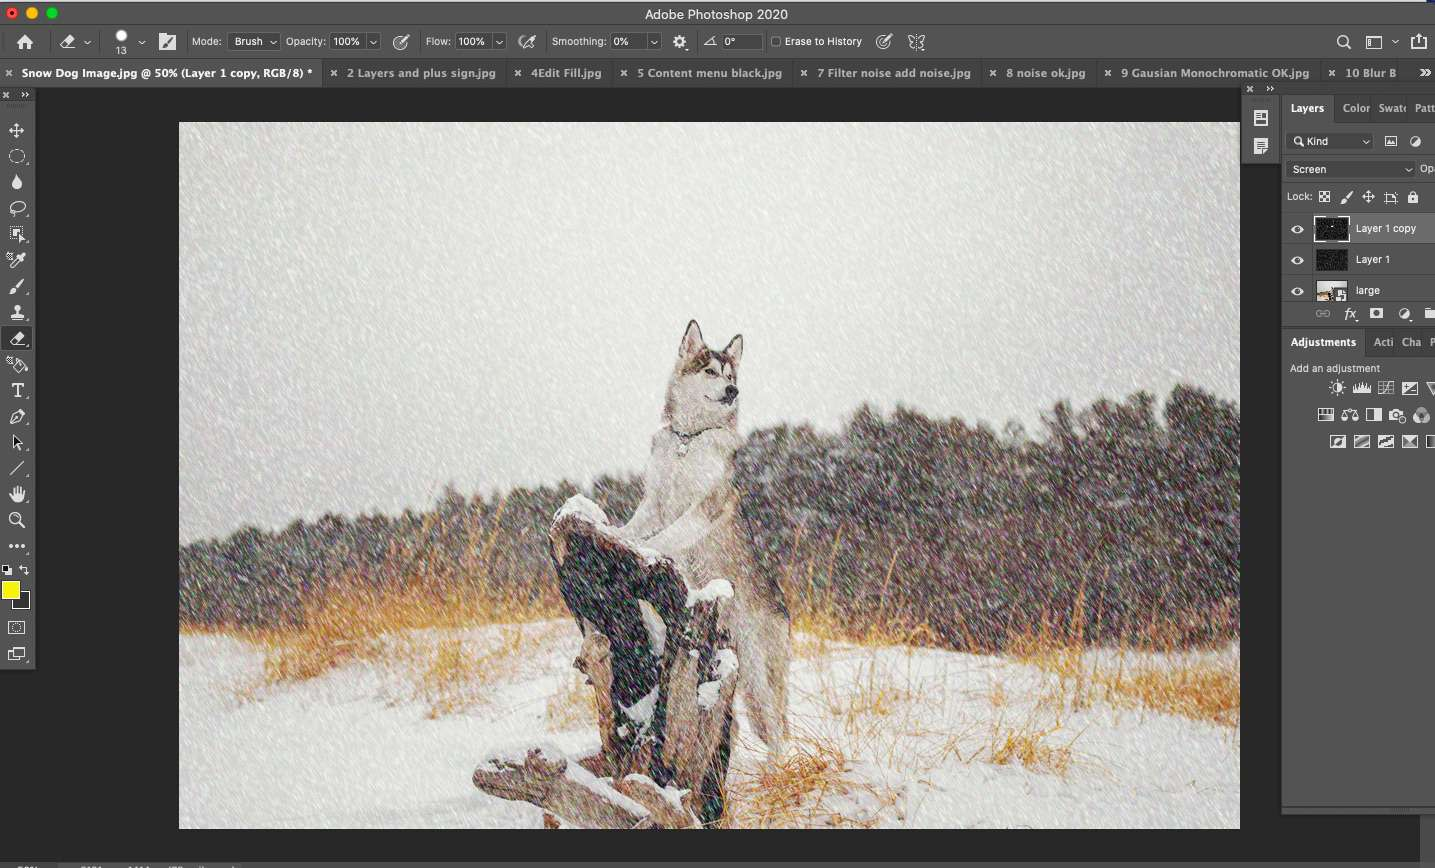 Final image of snow with Photoshop